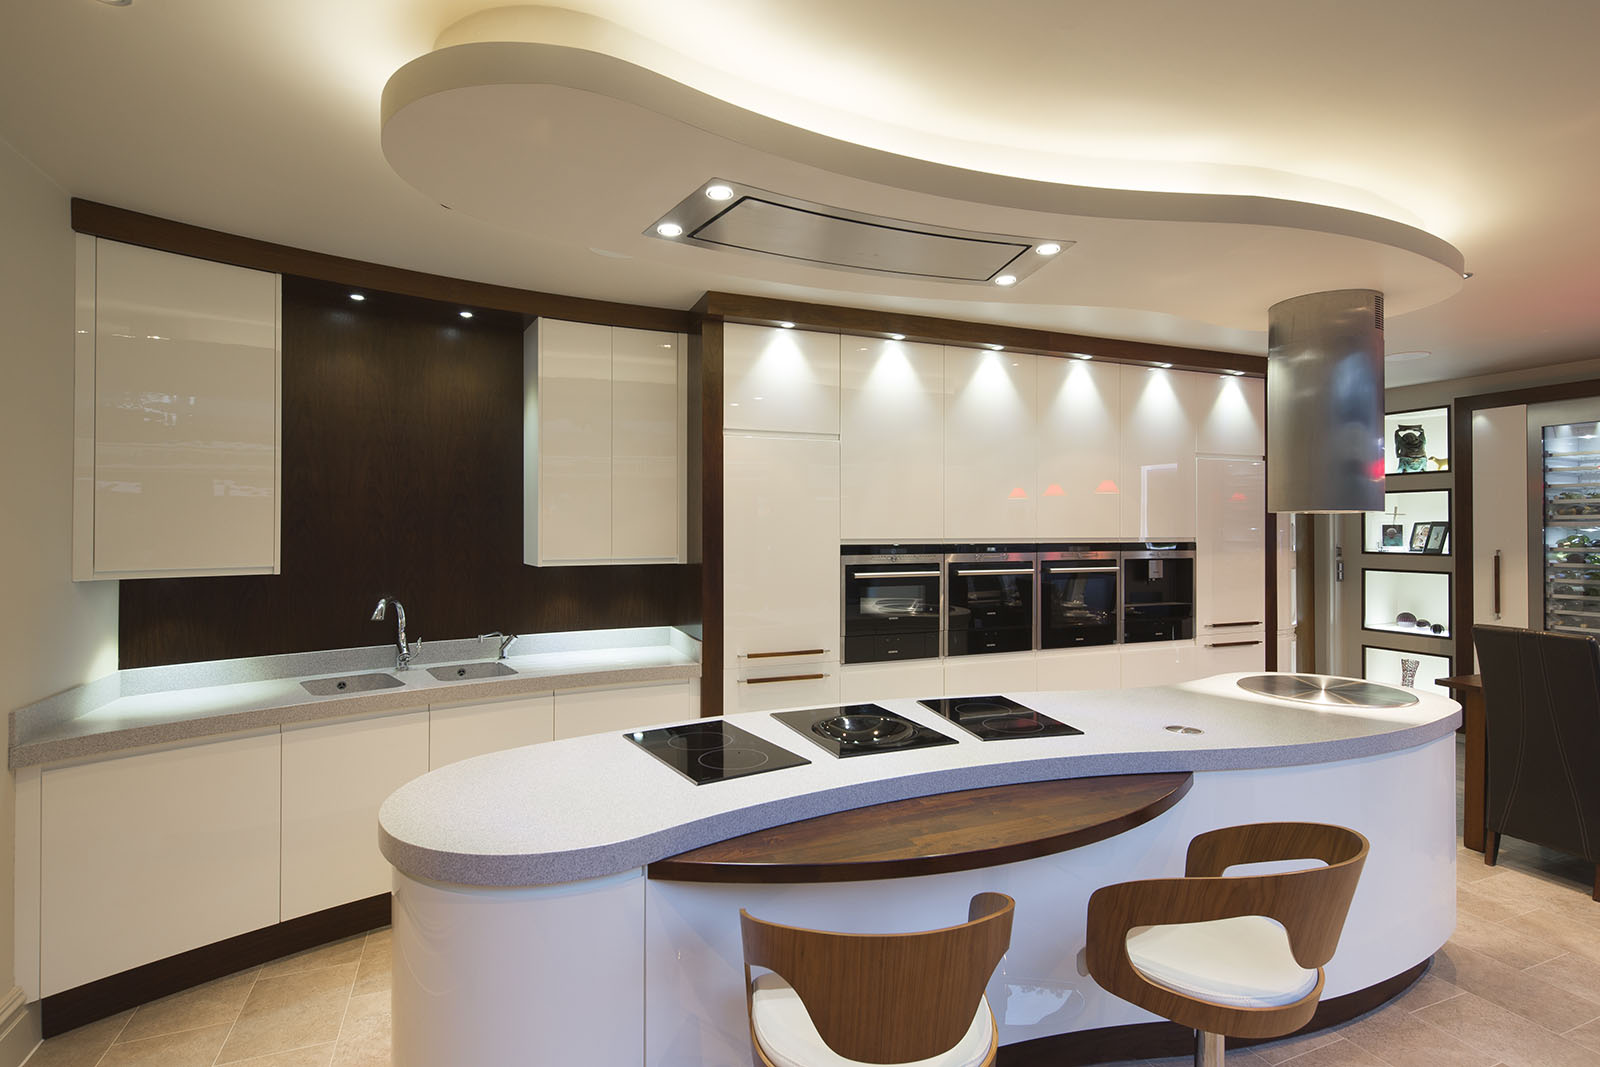 Milano Kitchen By Acanthus Design Featuring Corian Kitchen Worktops